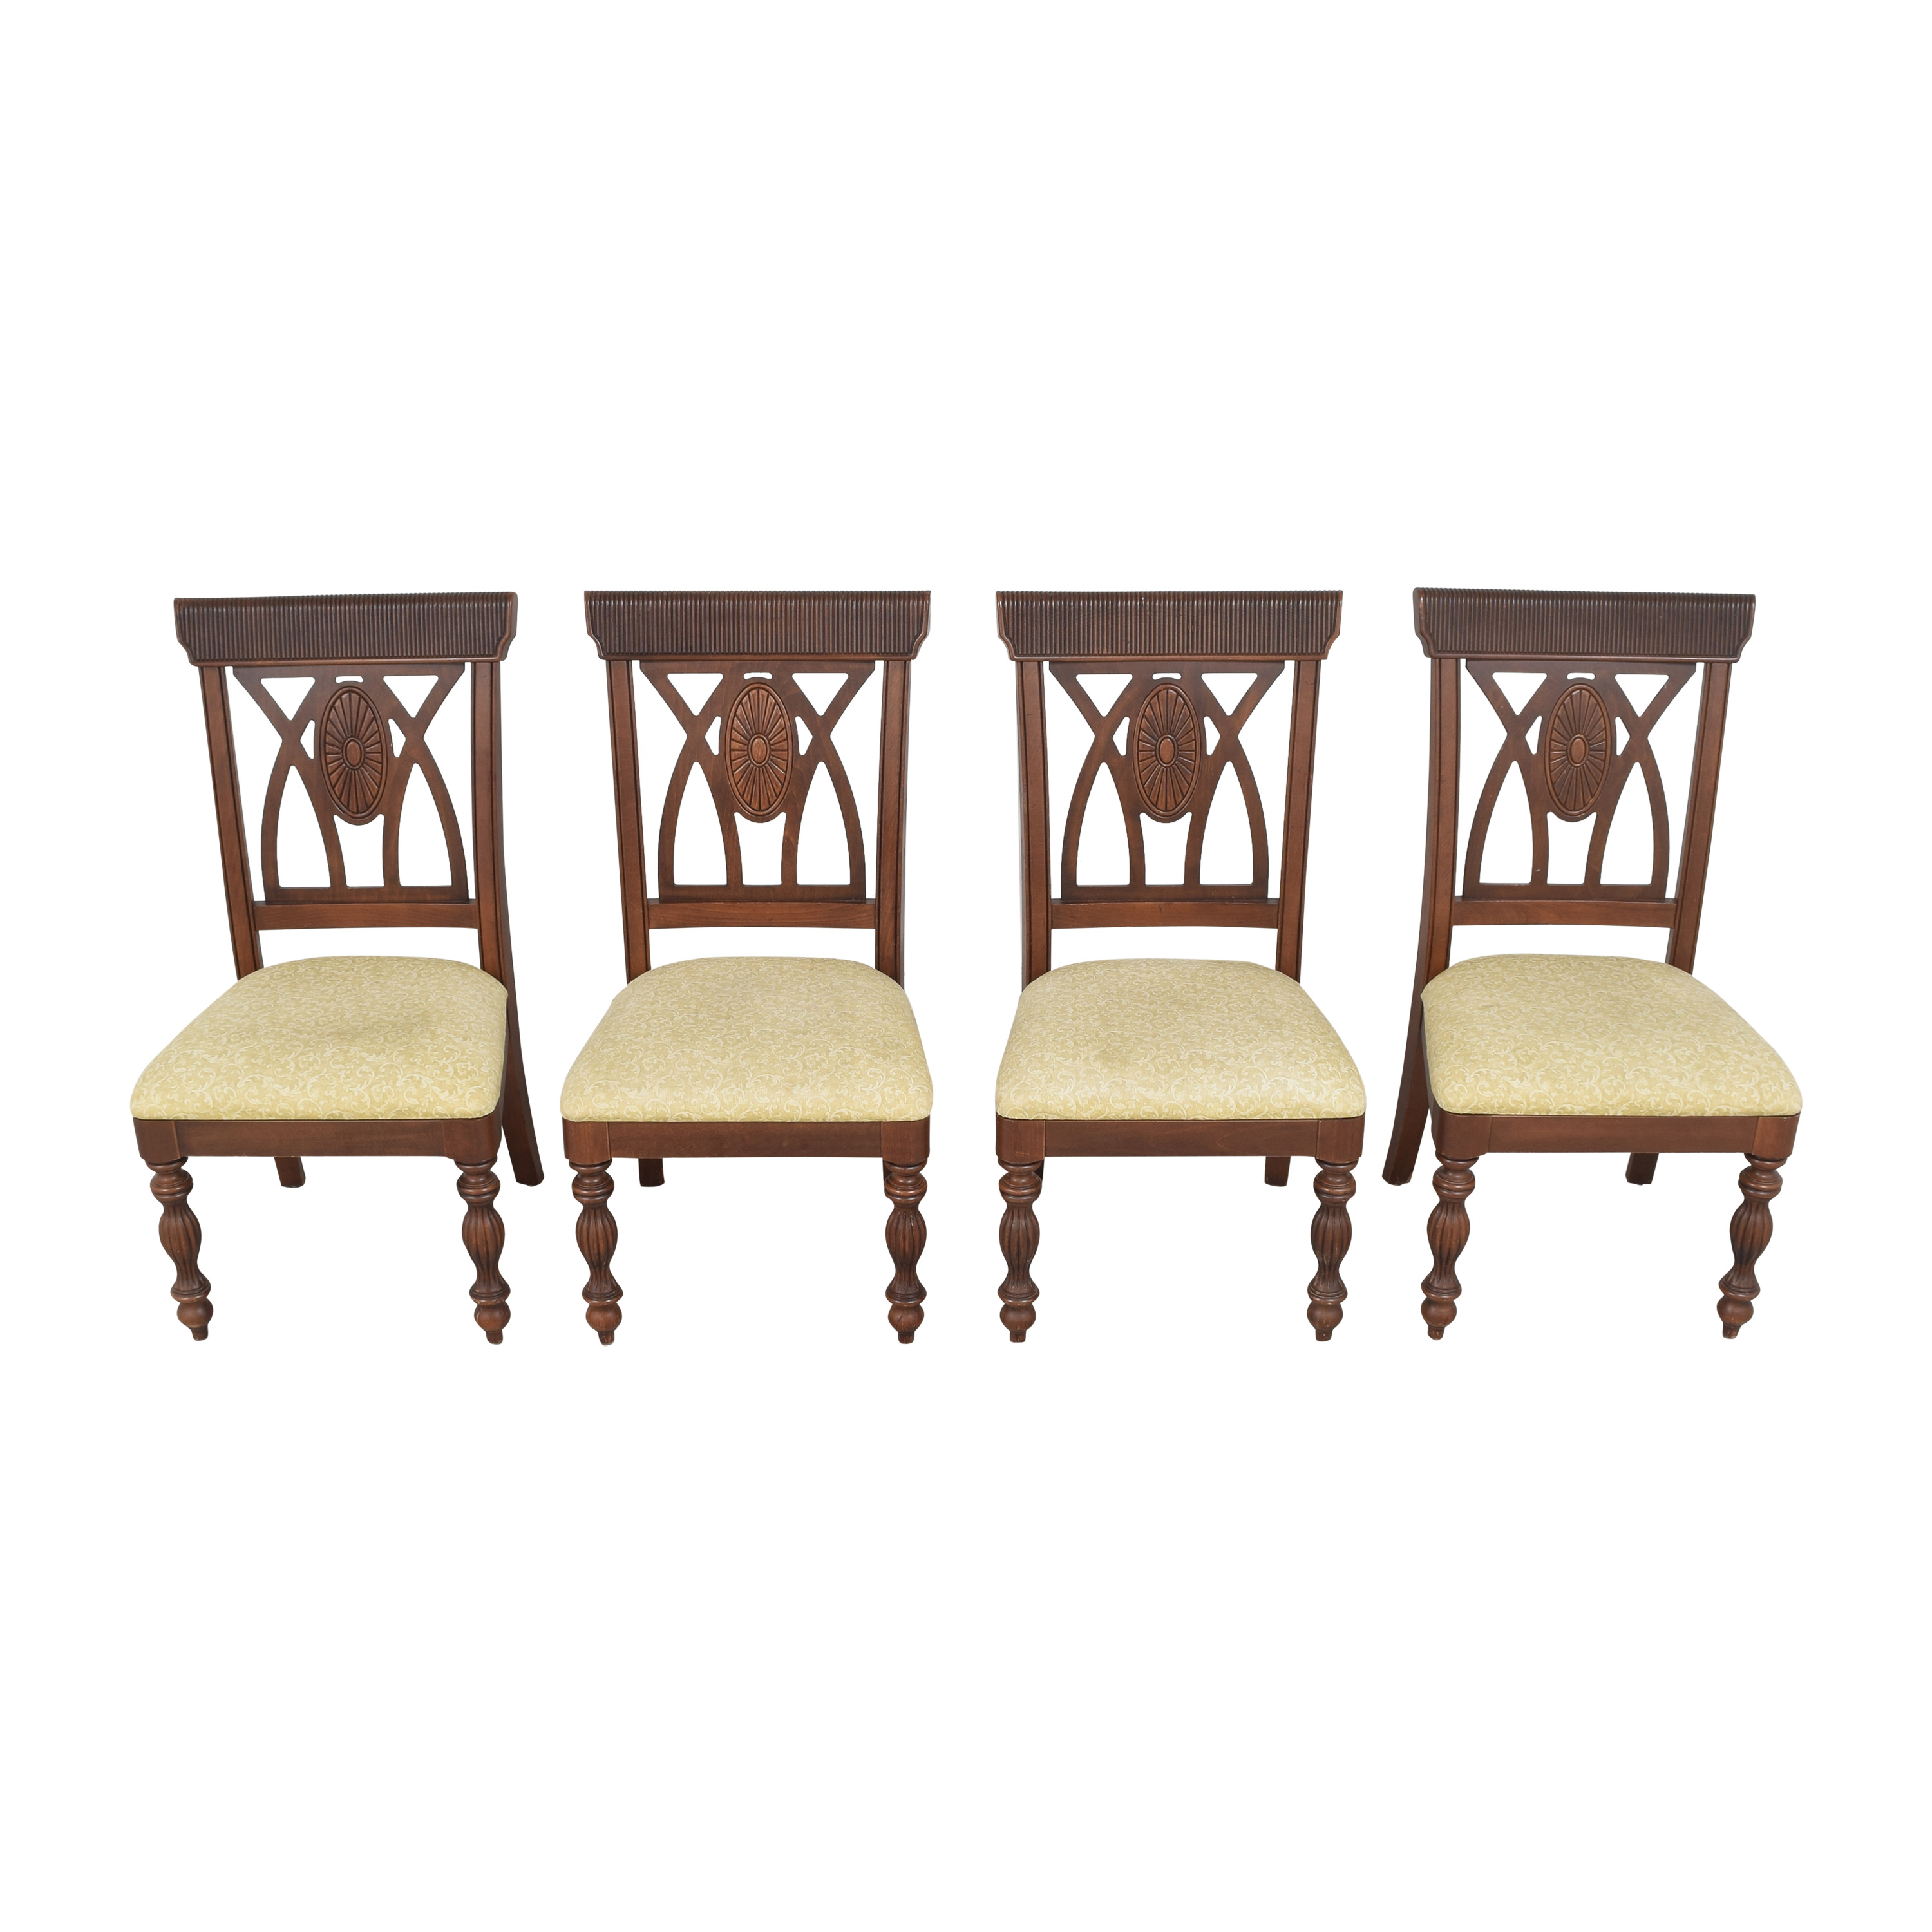 Upholstered Carved Dining Chairs dimensions